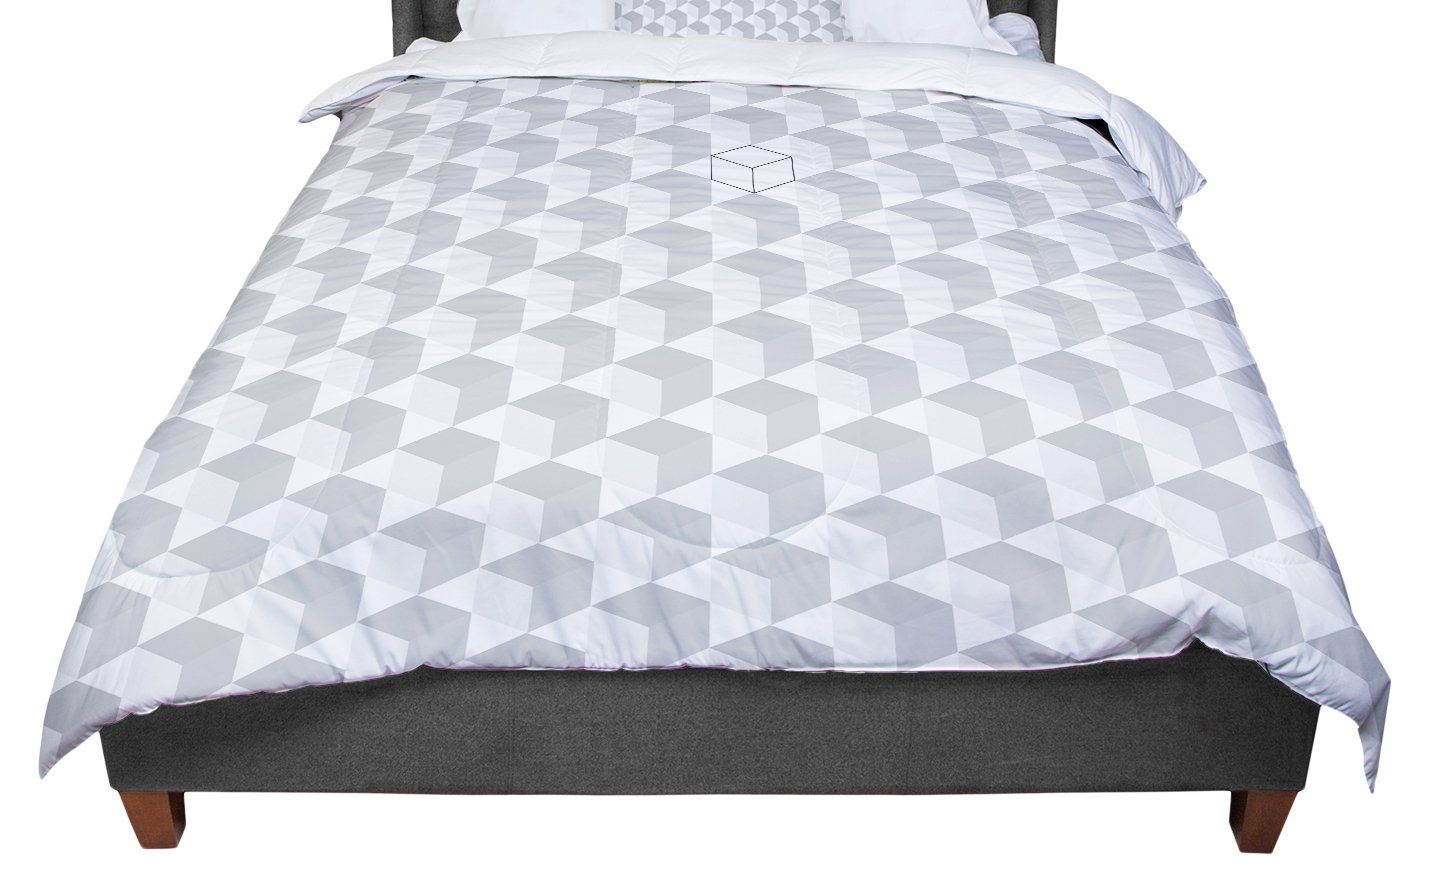 88 X 88 KESS InHouse KESS Original Greyscale Cubed  White Geometric Queen Comforter